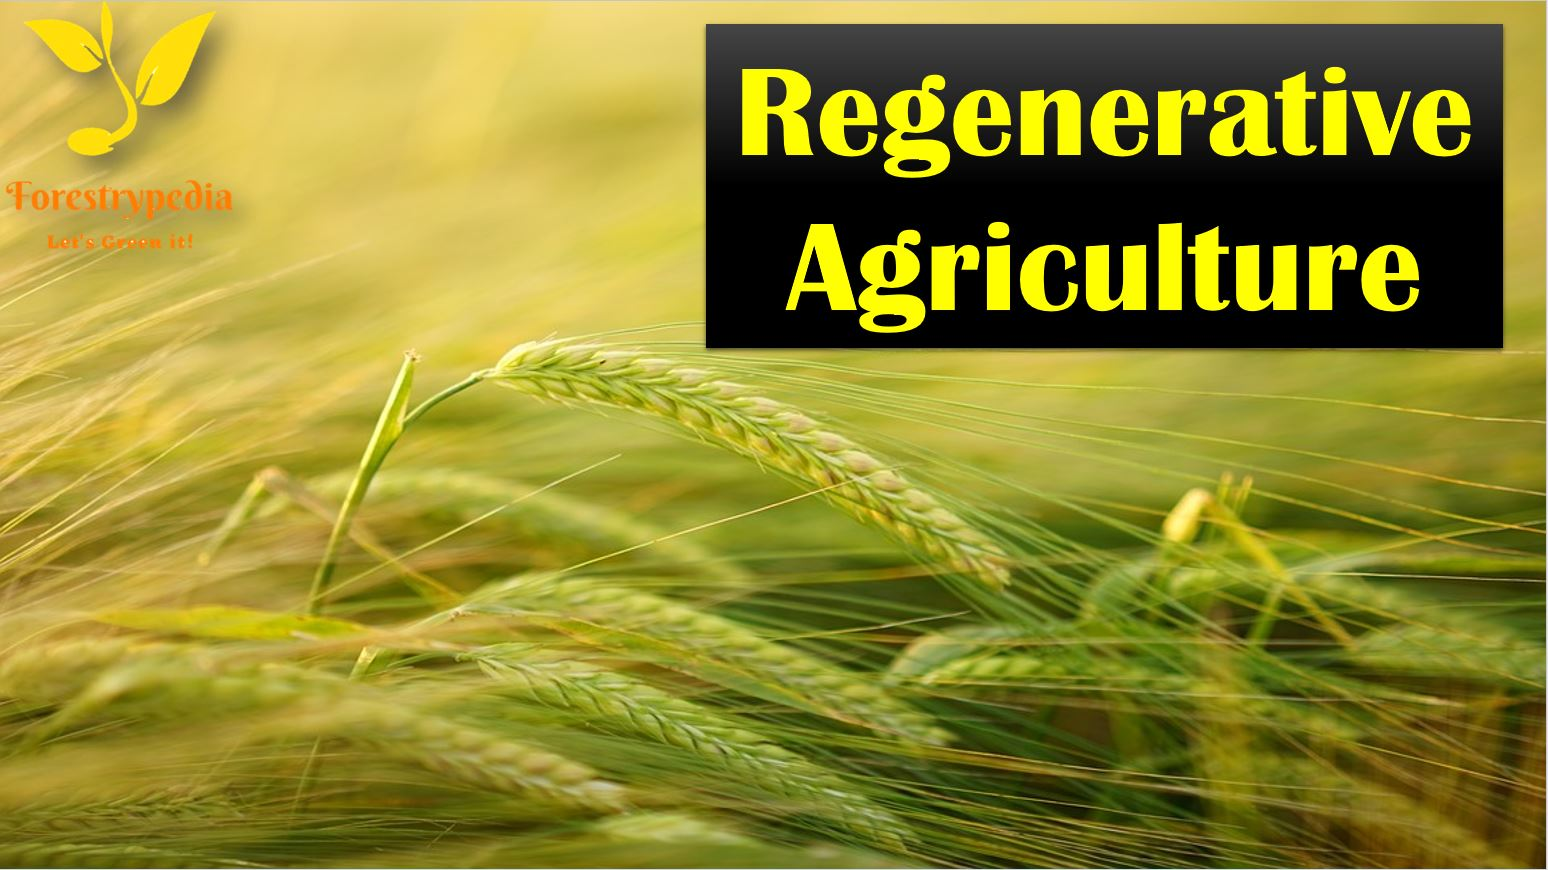 What Is The Importance of Regenerative Agriculture? - Forestrypedia